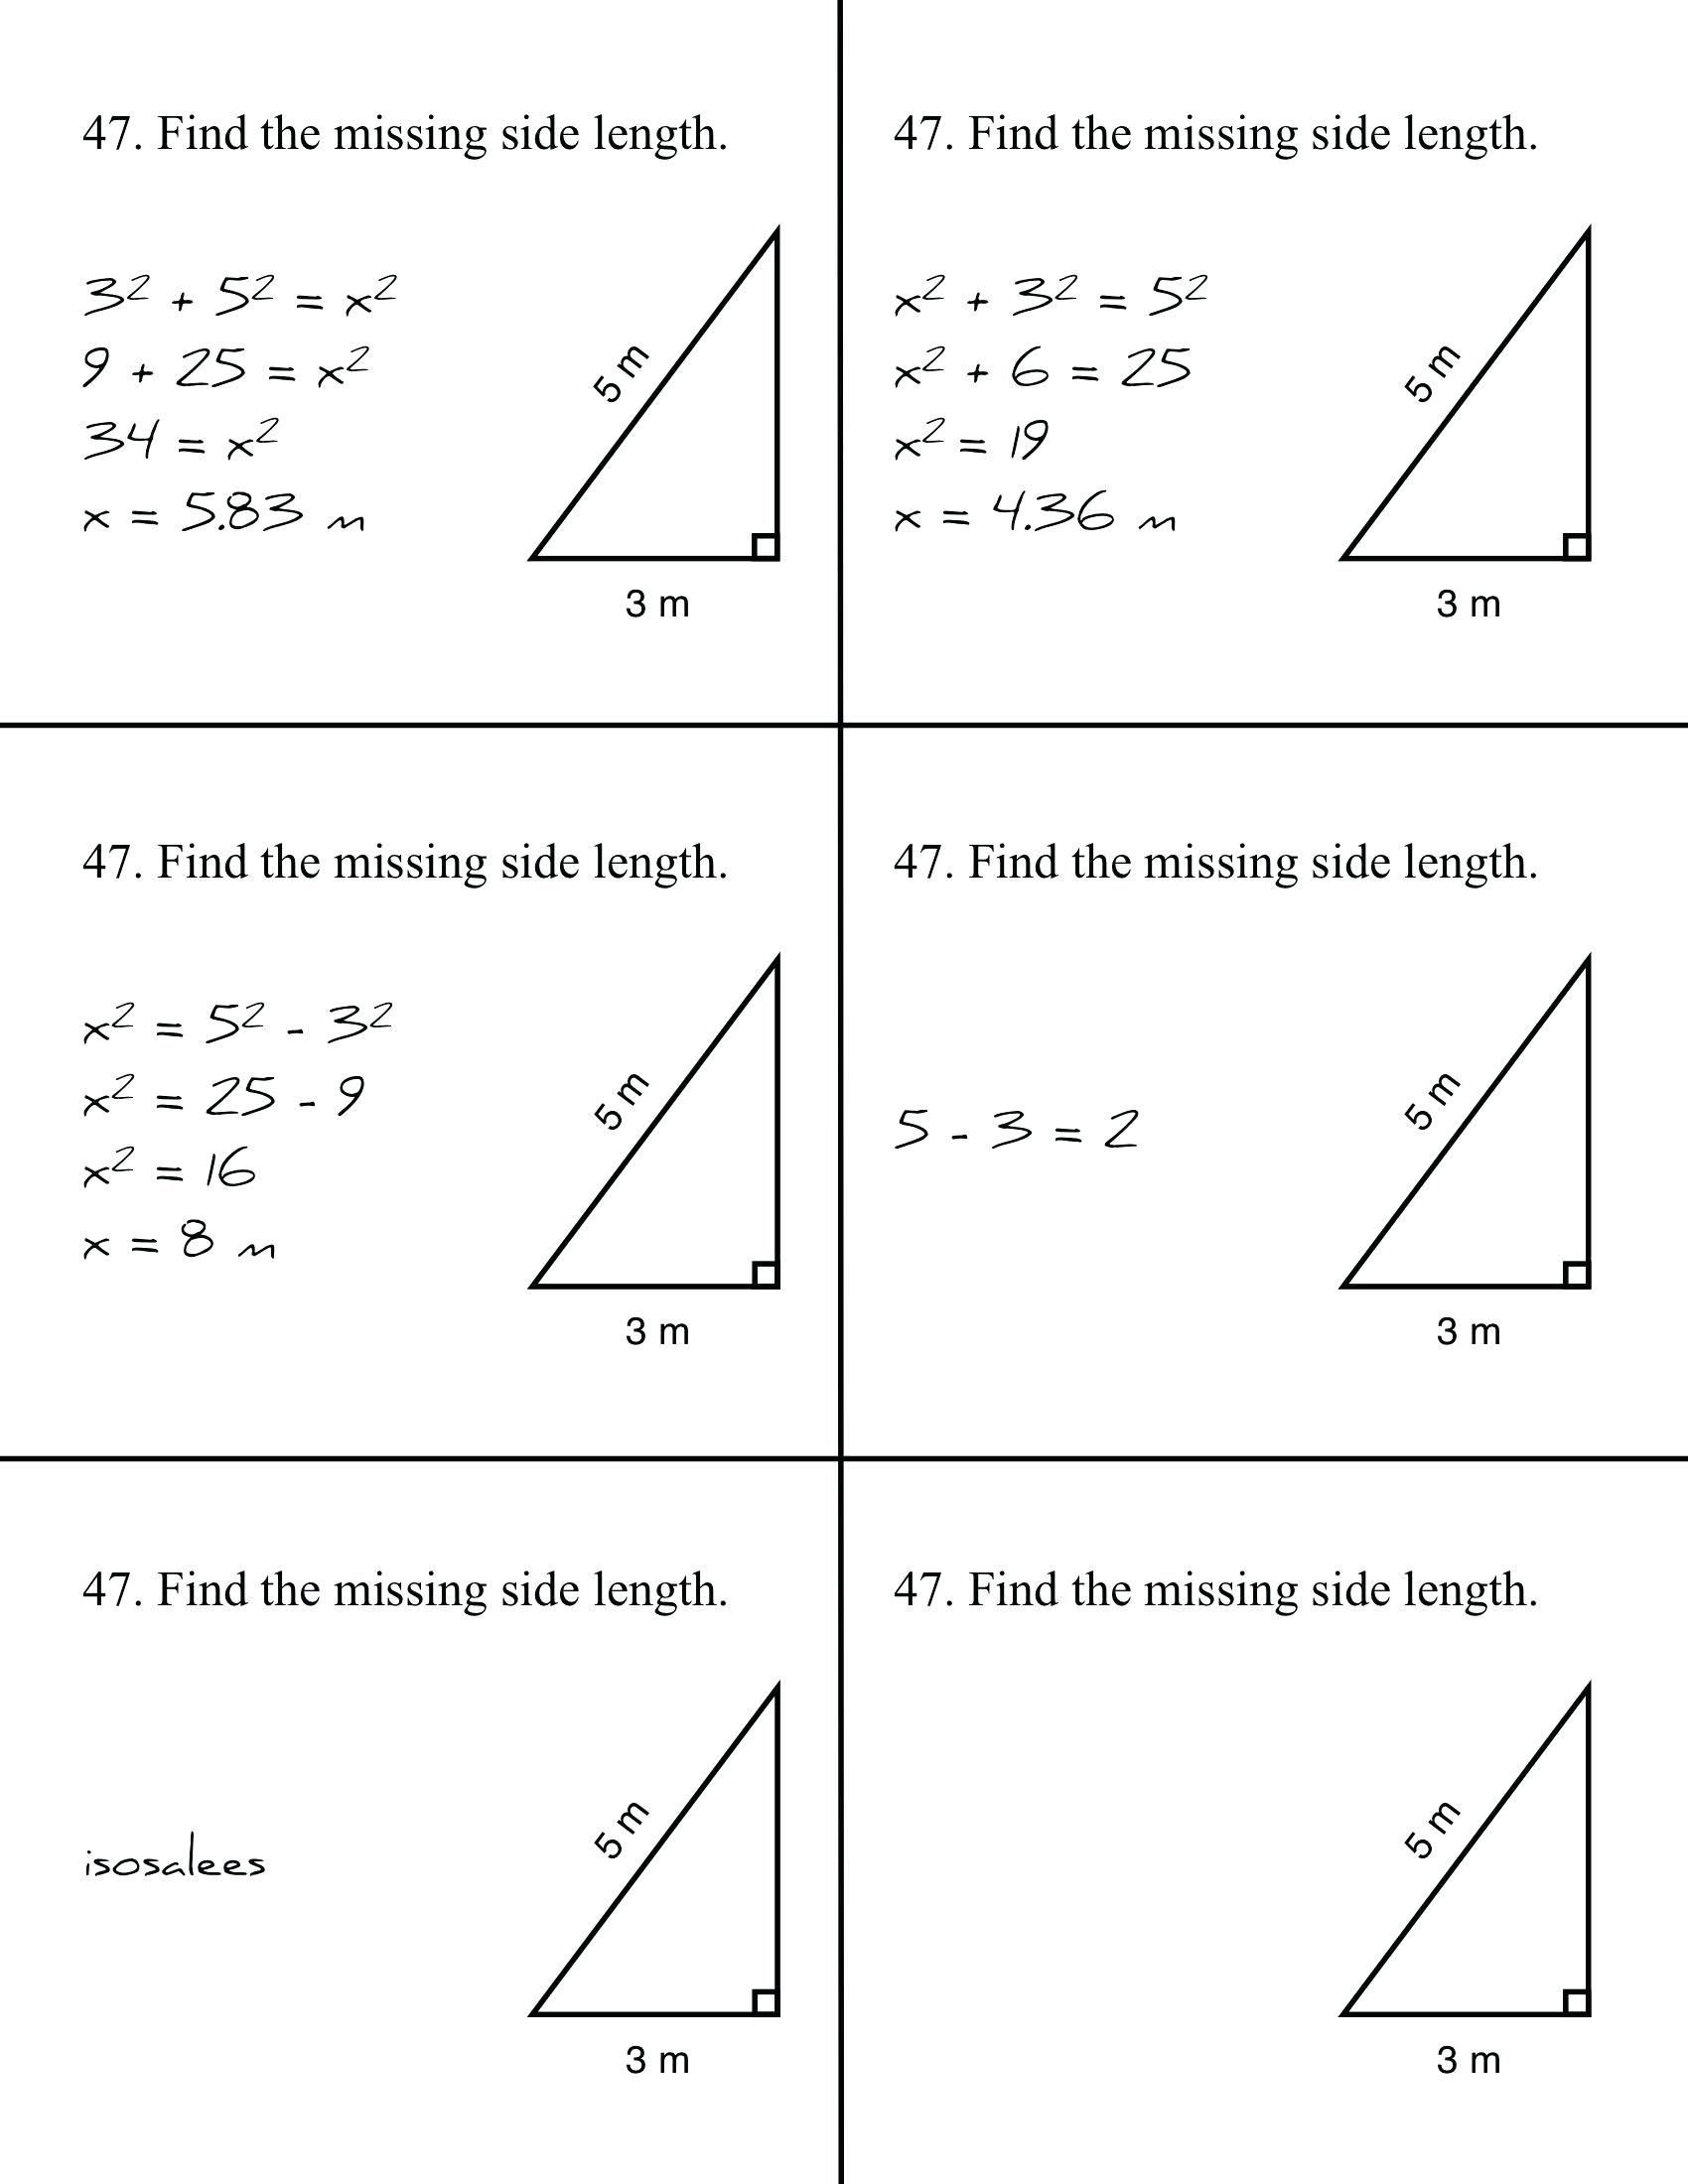 Pin By Janaalfarsi On Math Revising Pythagorean Theorem Worksheet Teaching Geometry Pythagorean Theorem